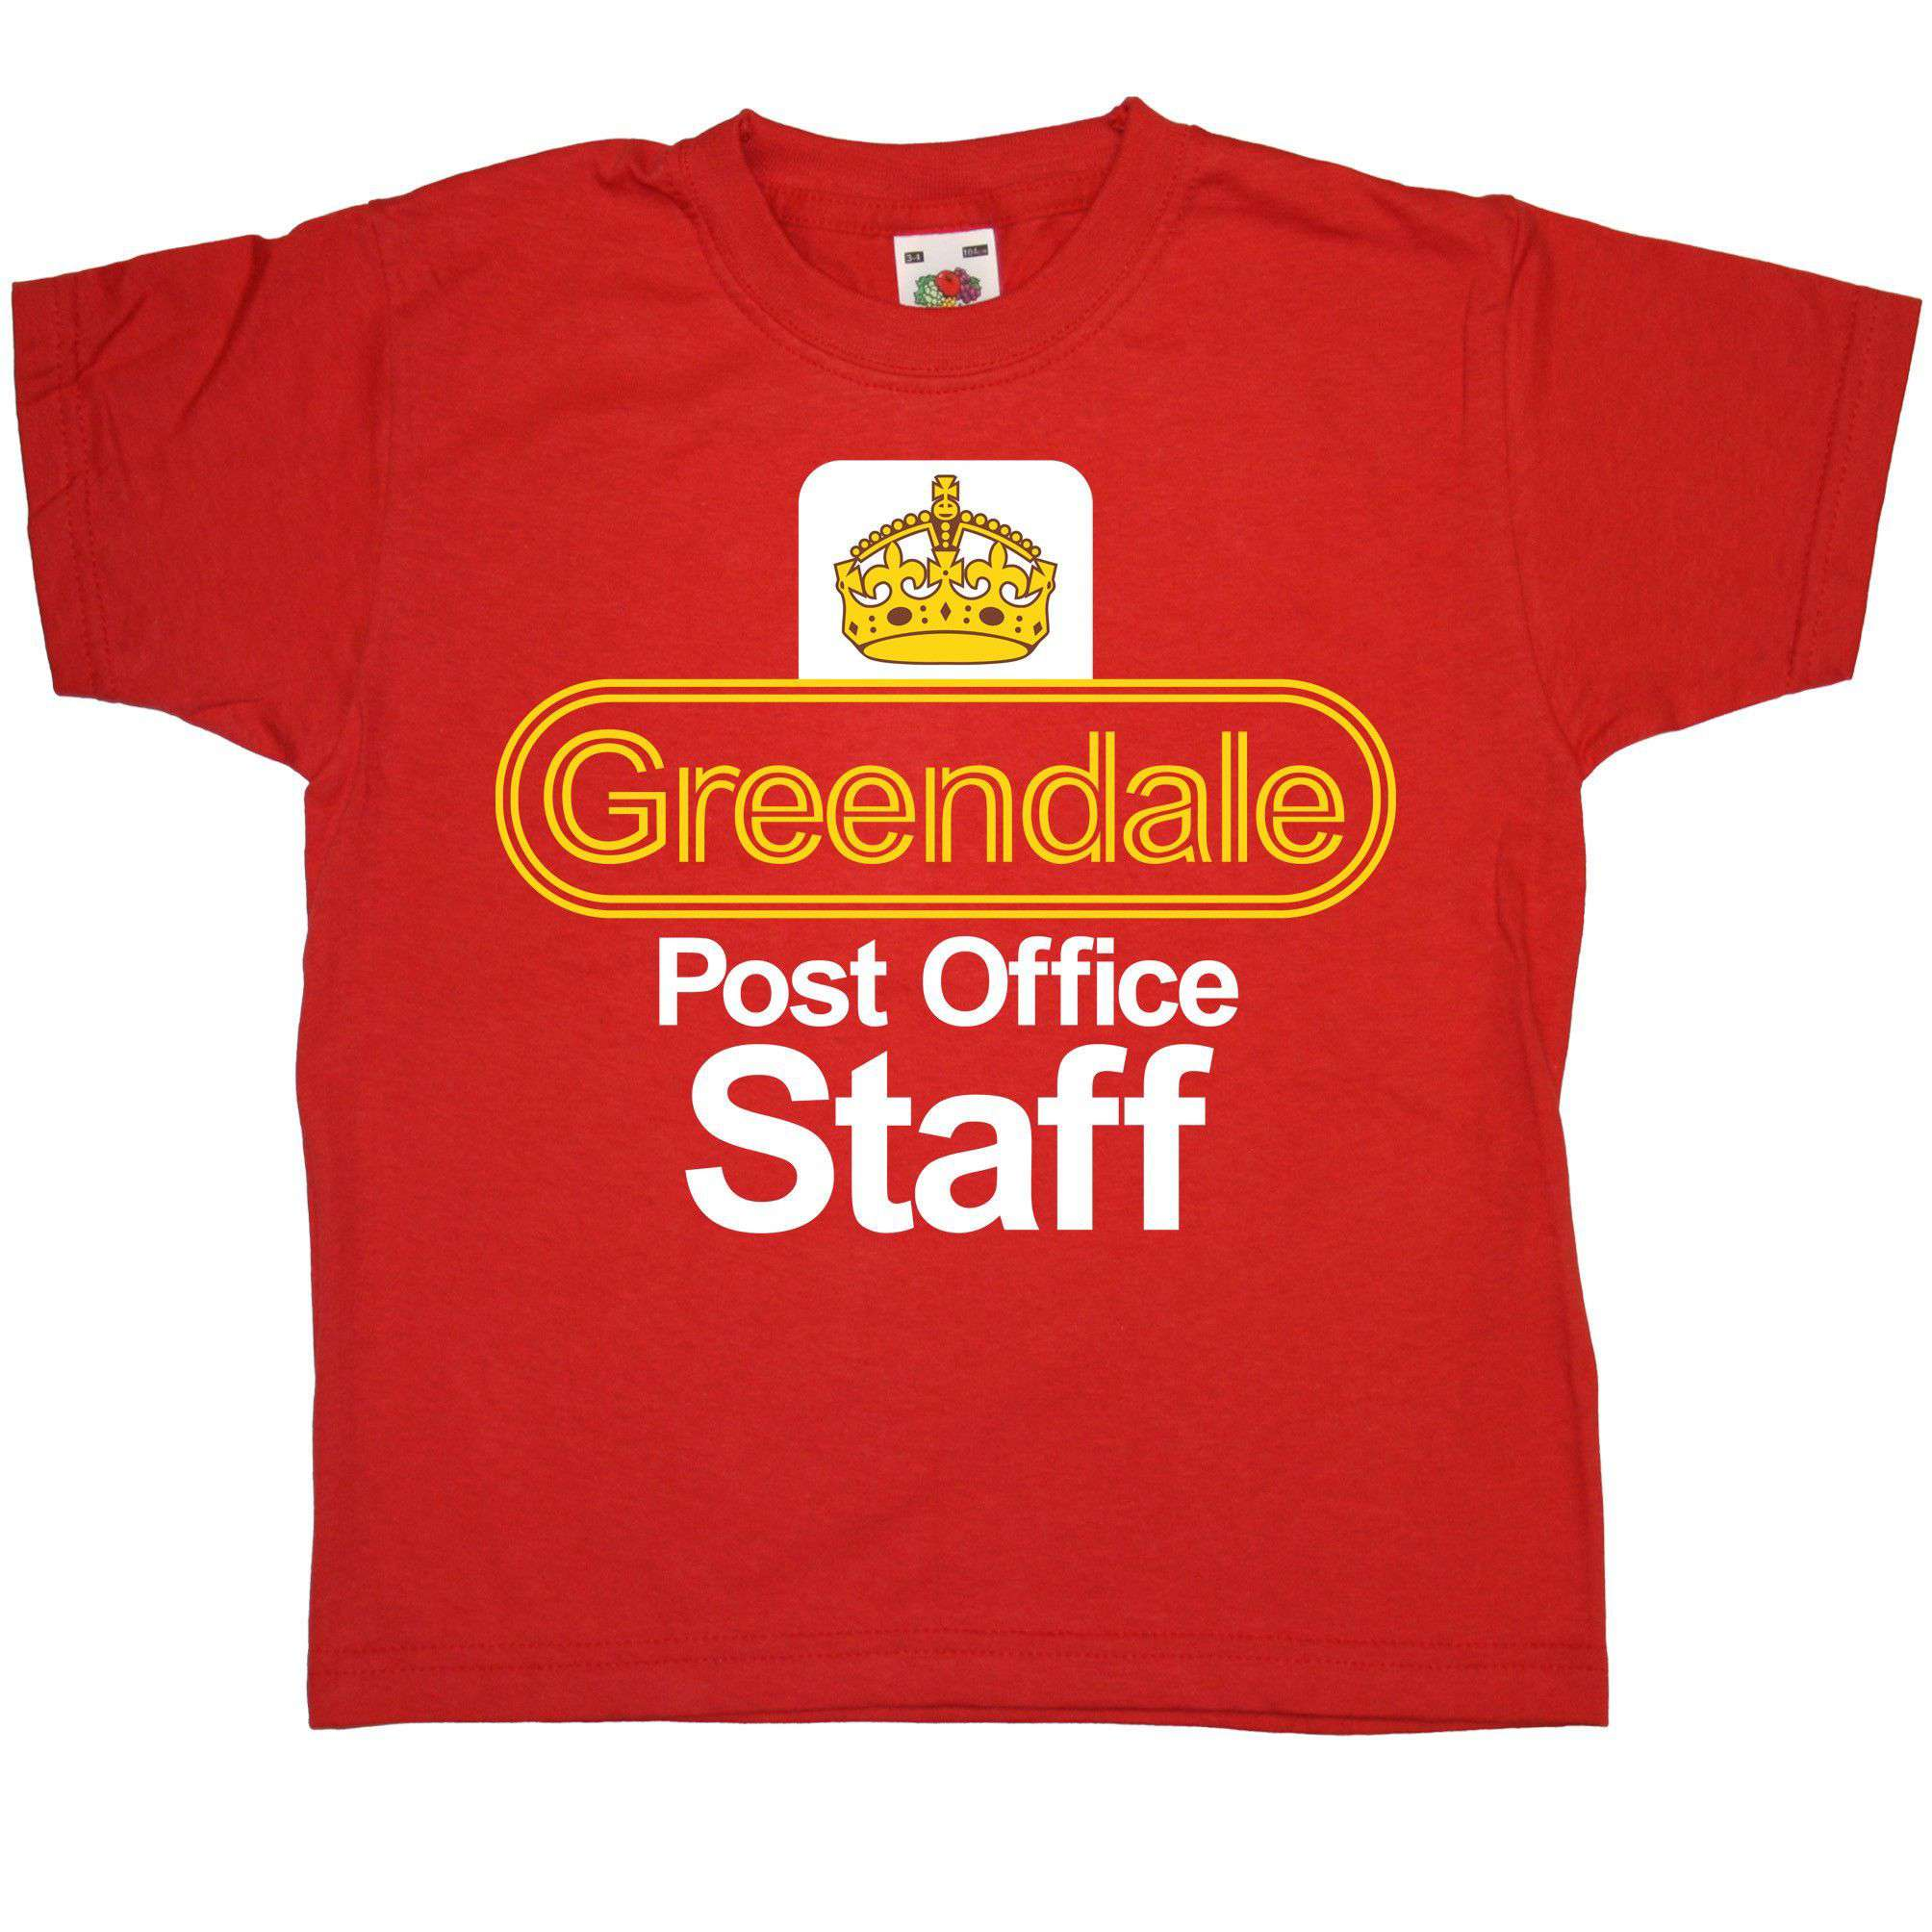 Inspired By Postman Pat T Shirt - Greendale